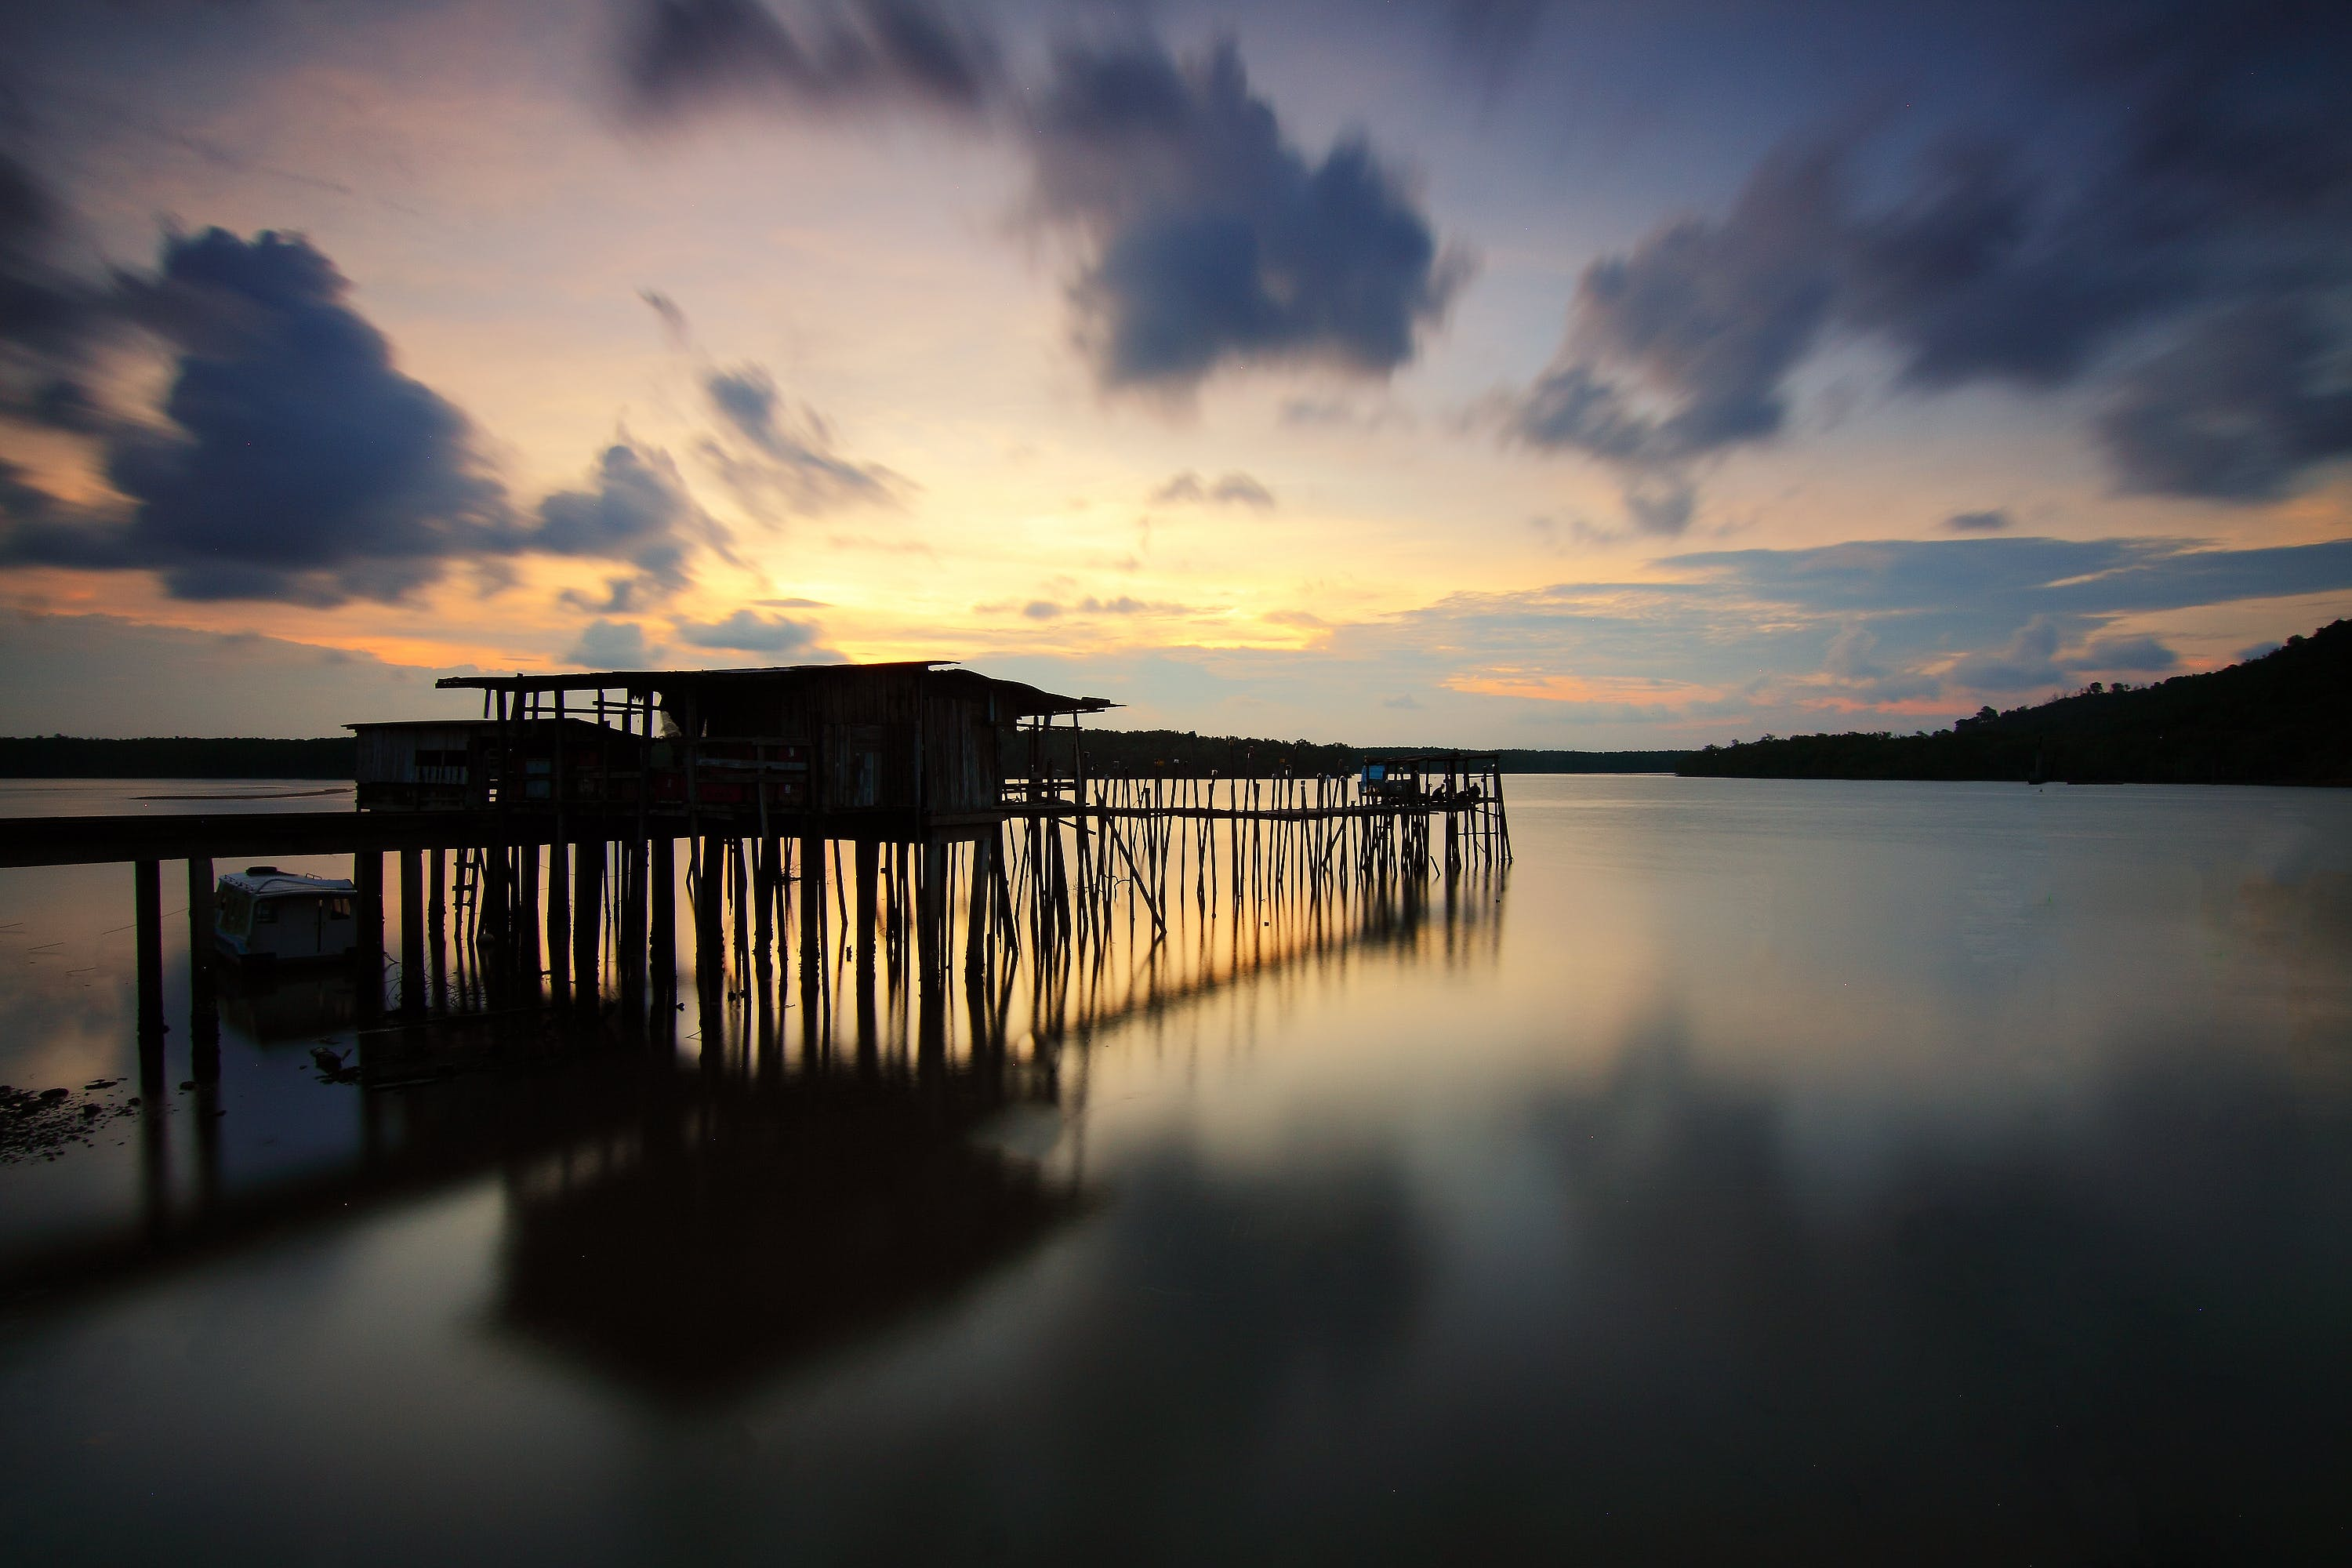 Silhouette of Wooden House and Walkbridge on Water